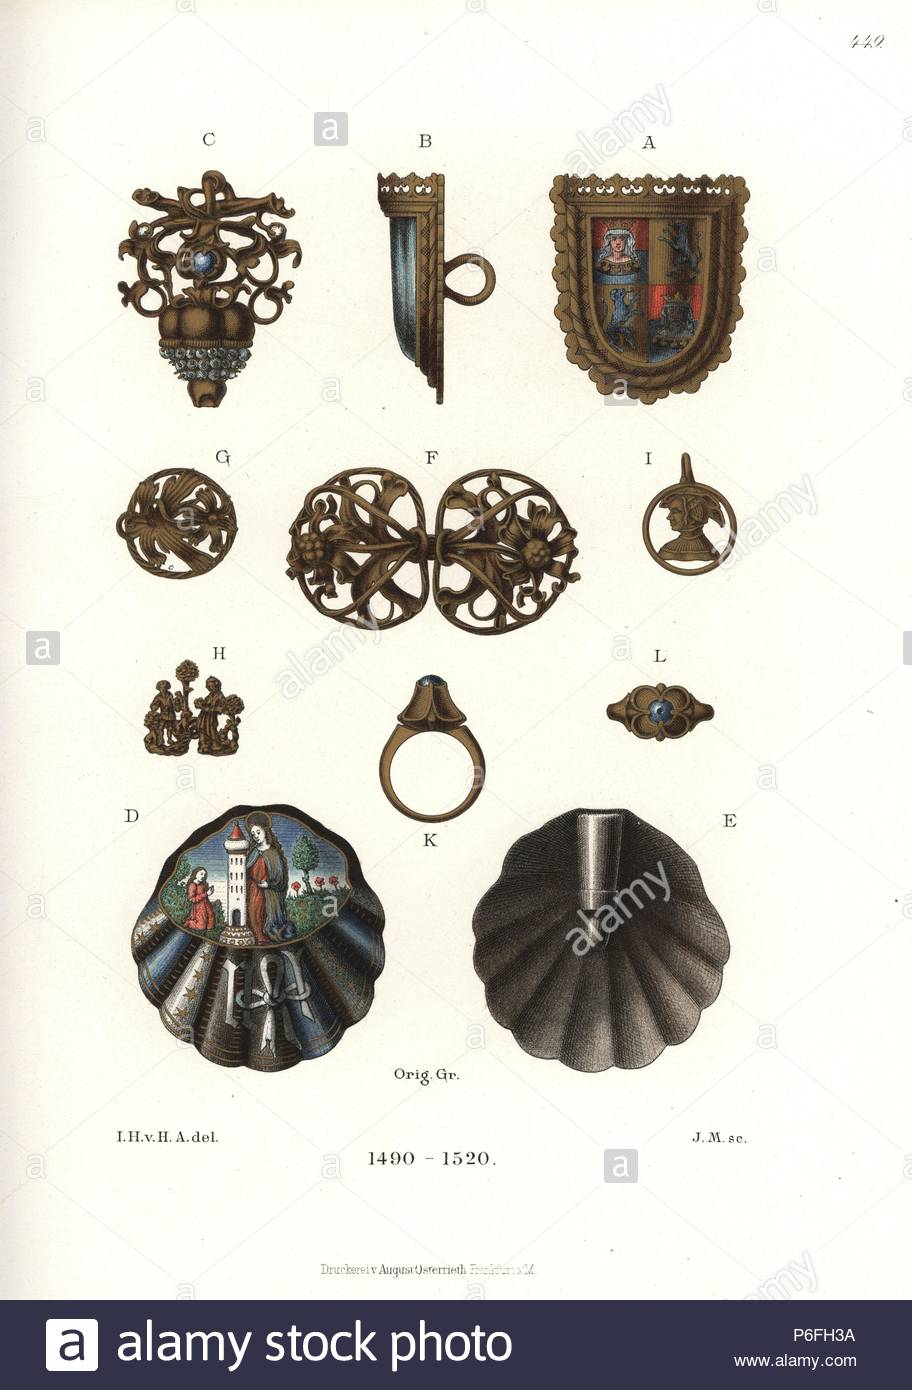 Jewelry from the end of the 15th and early 16th centuries. Brooch in the form of a painted shield A,B, bijou C, decorated clamshell clasp D,E, Gothic style girdle fasteners G,F, bust of a woman I, and ring K,L. Chromolithograph from Hefner-Alteneck's 'Costumes, Artworks and Appliances from the Middle Ages to the 17th Century,' Frankfurt, 1889. Illustration by Dr. Jakob Heinrich von Hefner-Alteneck, lithographed by J.M. Dr. Hefner-Alteneck (1811 - 1903) was a German museum curator, archaeologist, art historian, illustrator and etcher. - Stock Image